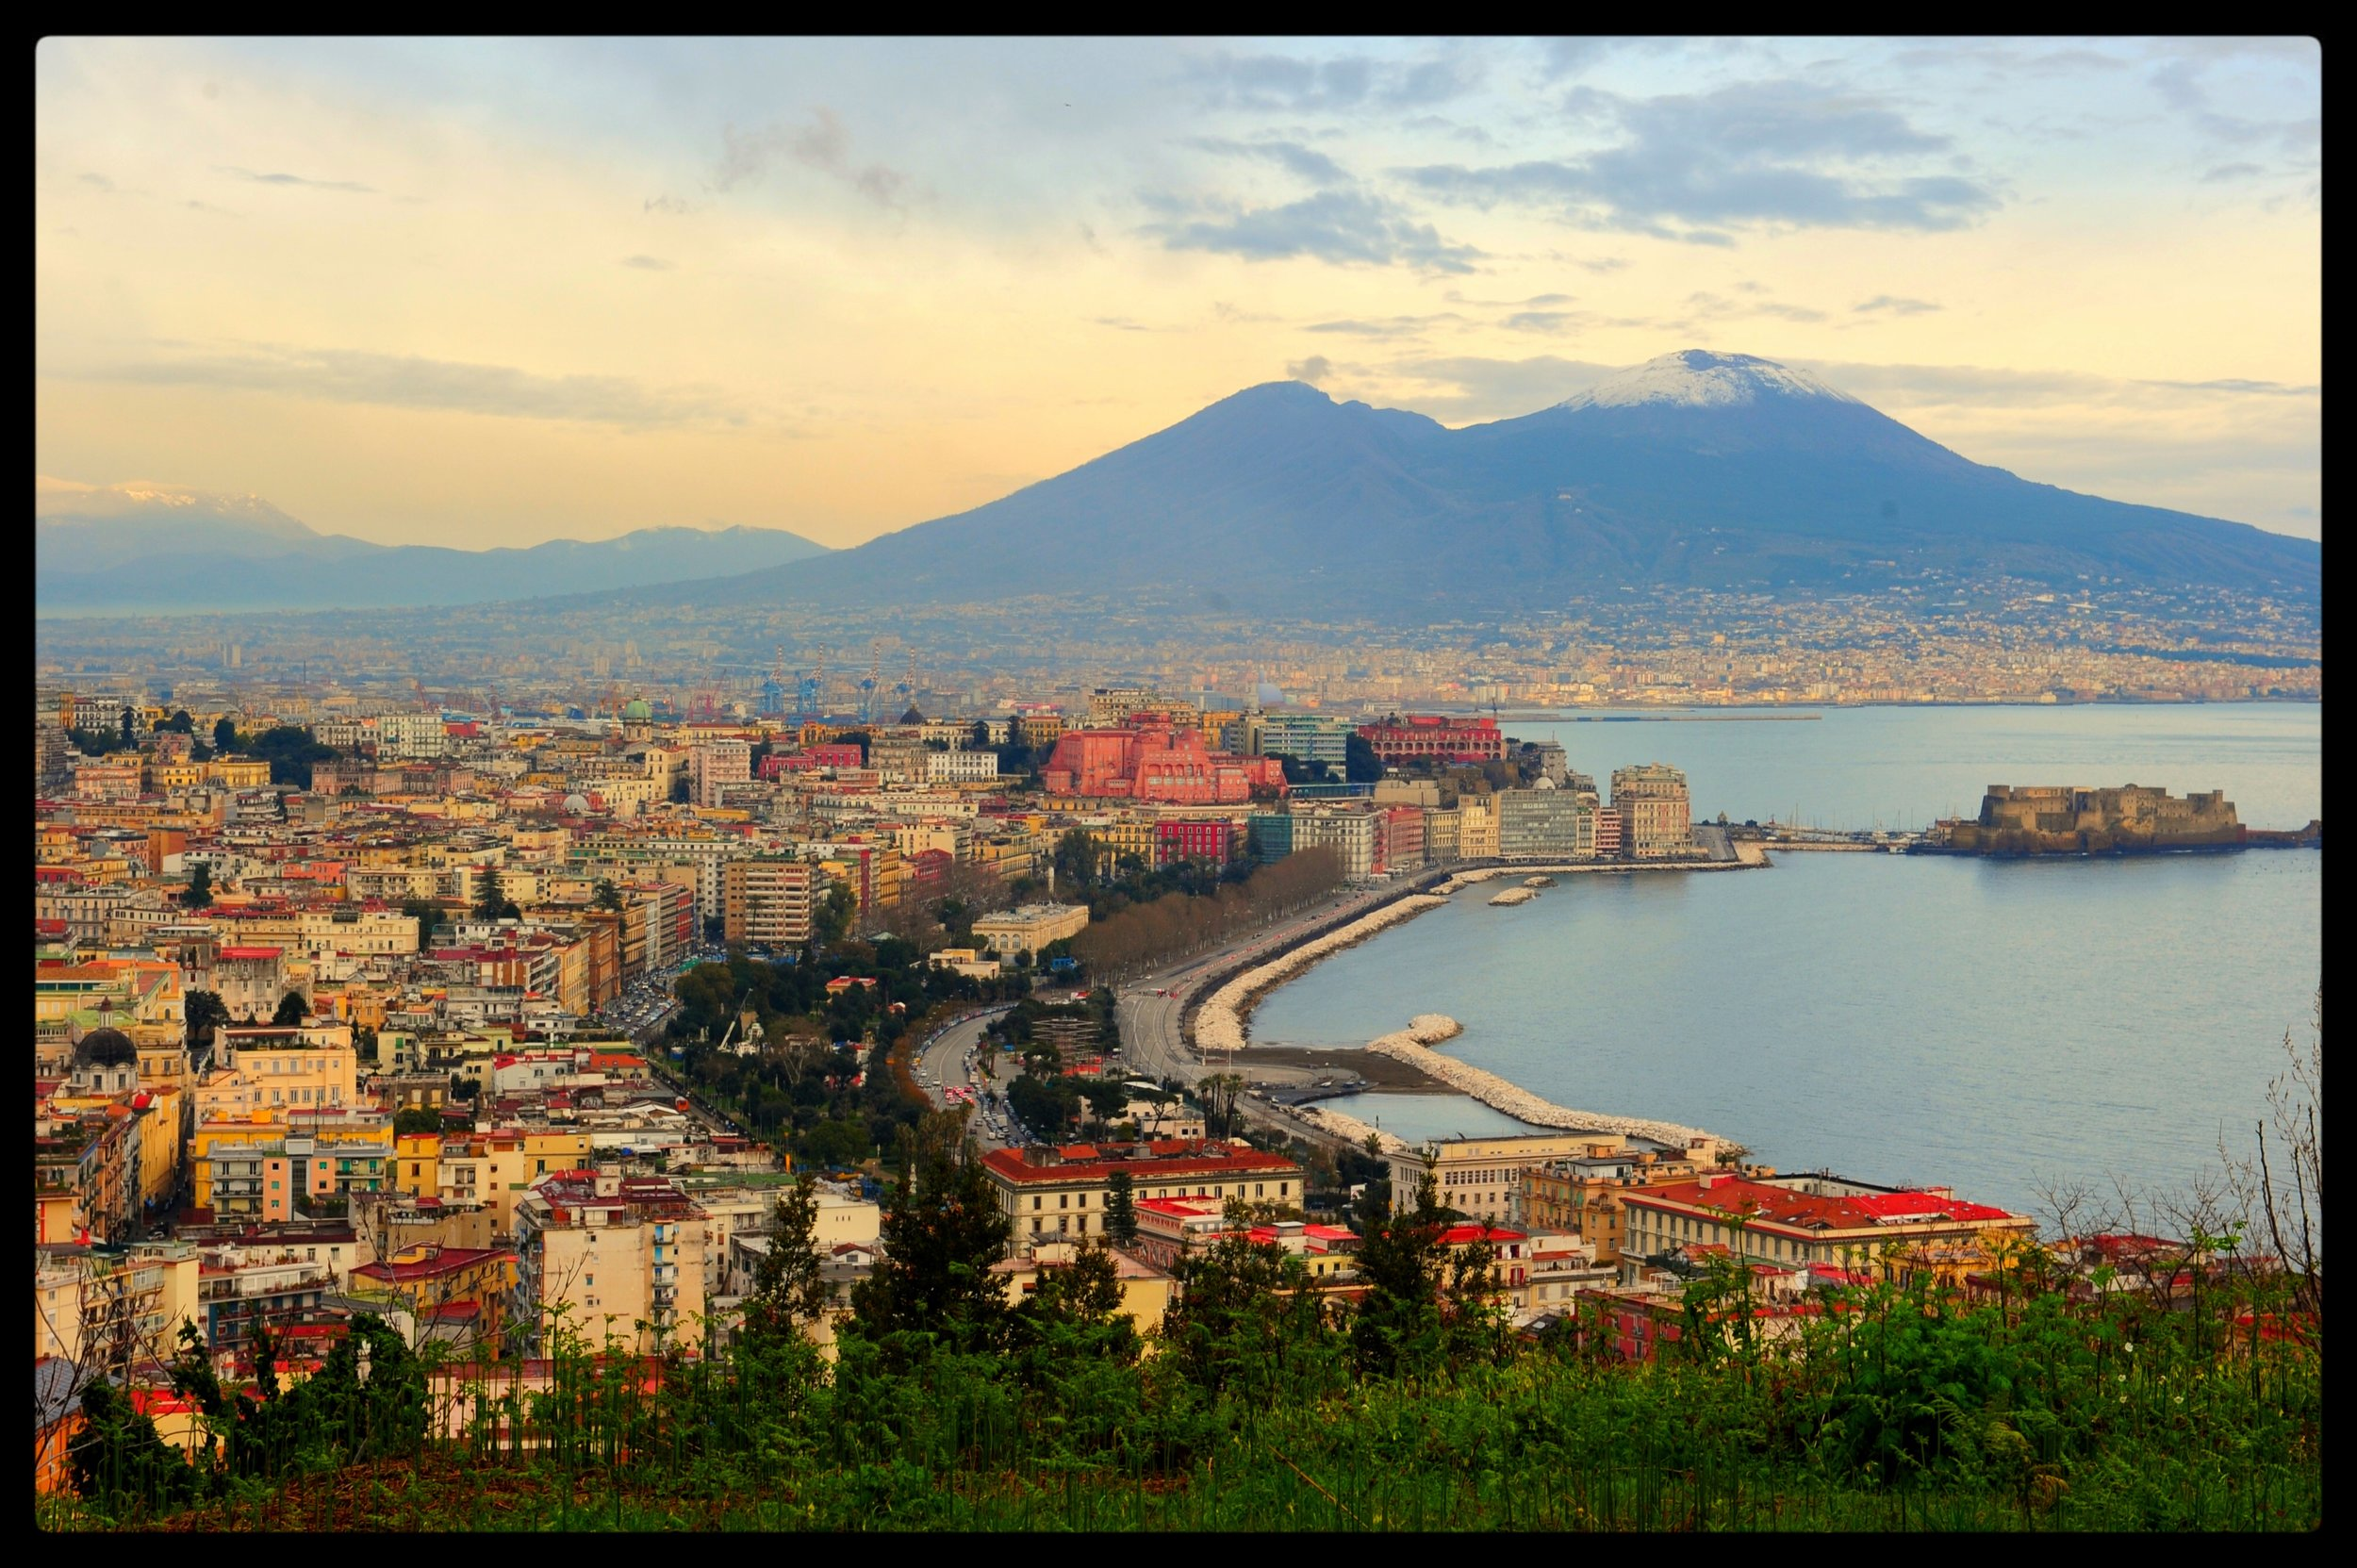 Photo by Tara Crossley | In the winter, you can catch a glimpse of Vesuvius sprinkled with snow